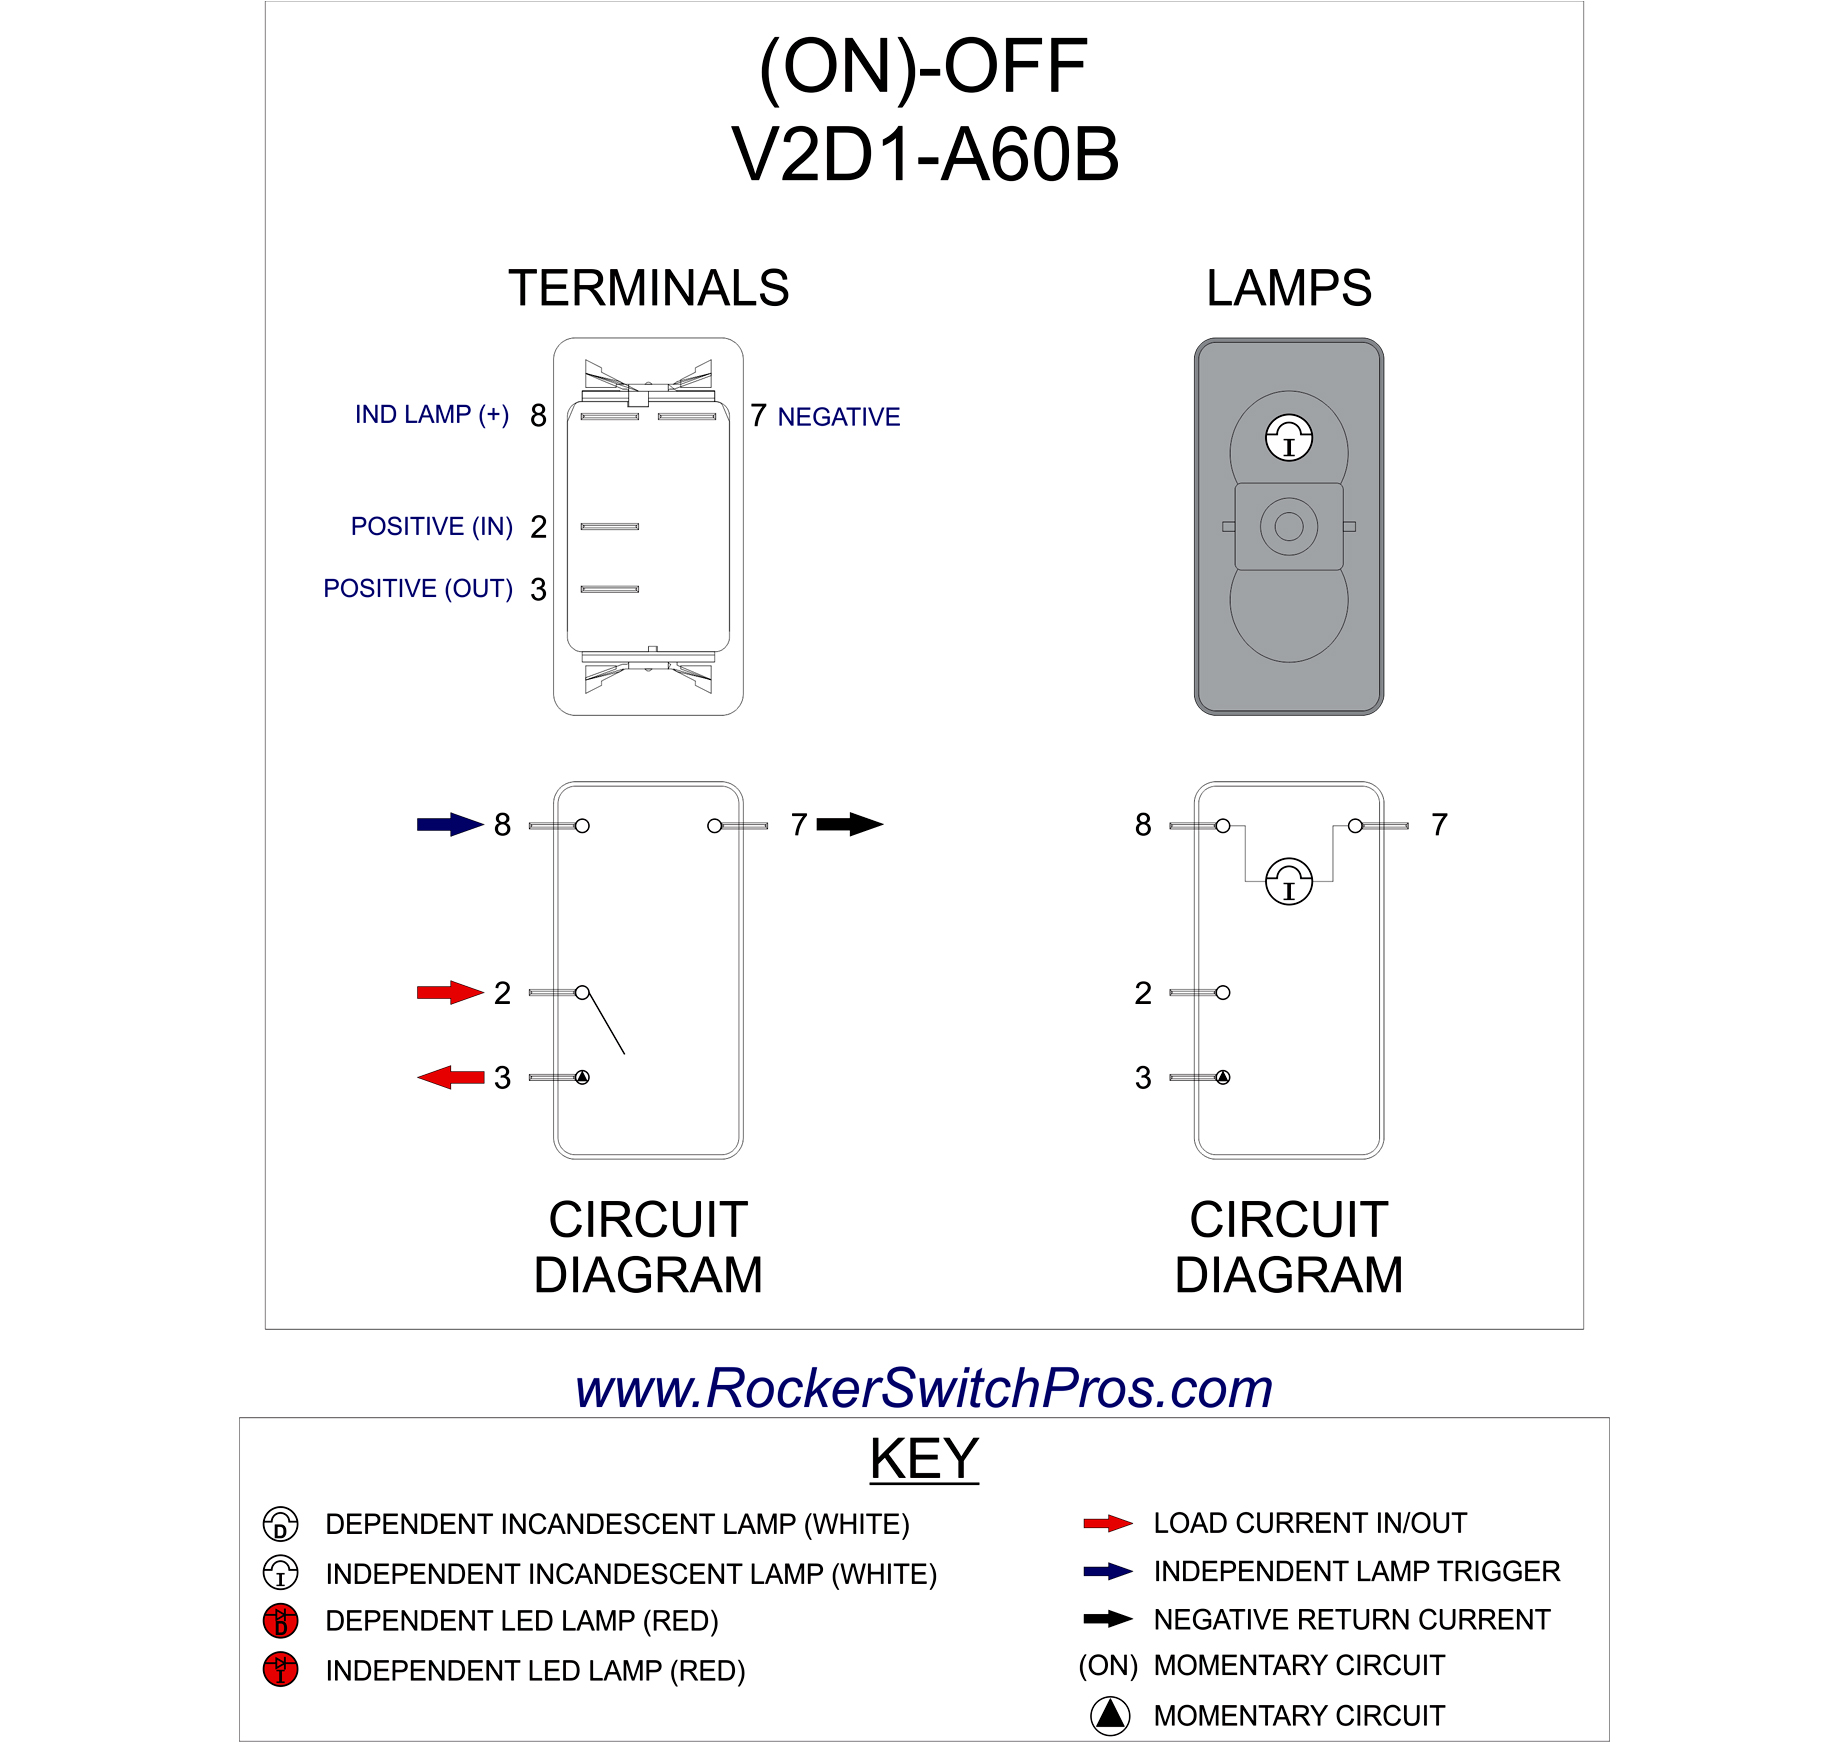 hight resolution of on off momentary switch wiring diagram simple wiring schema momentary switch symbol momentary switch diagram